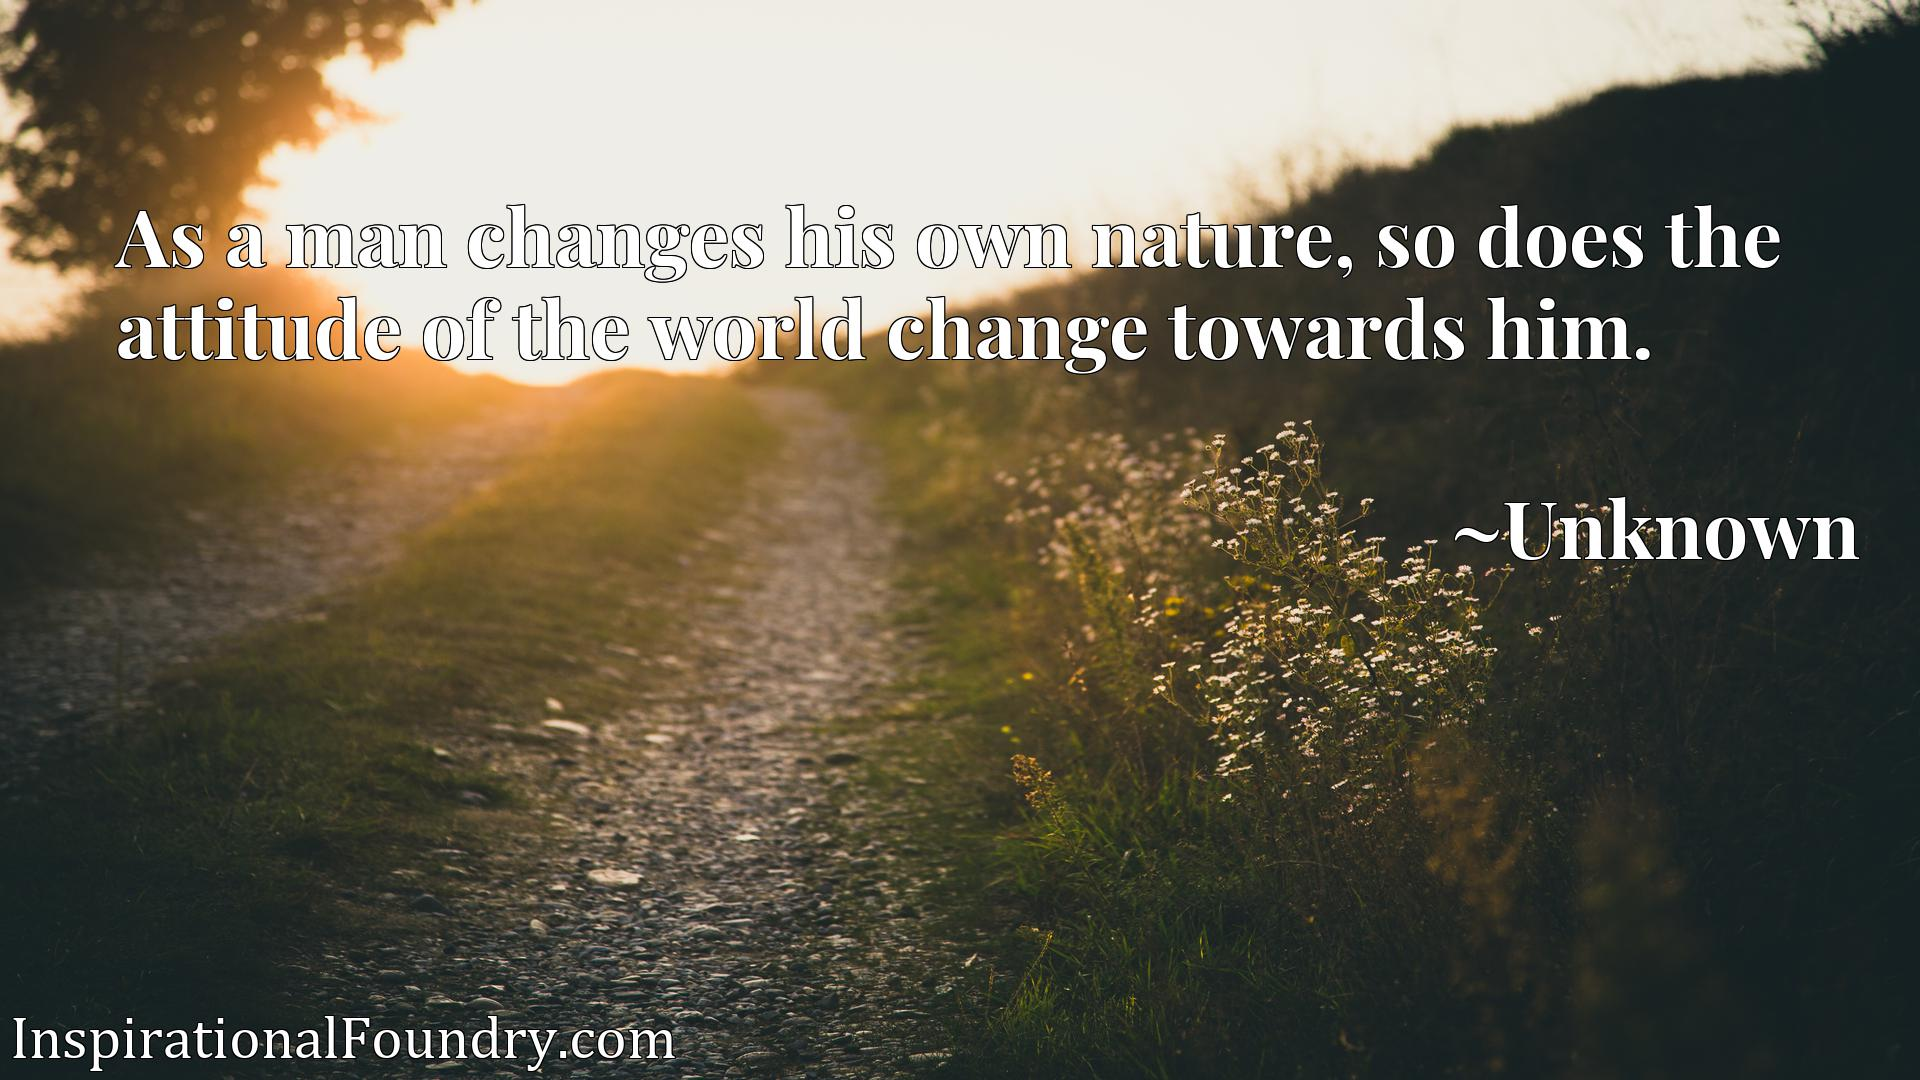 Quote Picture :As a man changes his own nature, so does the attitude of the world change towards him.